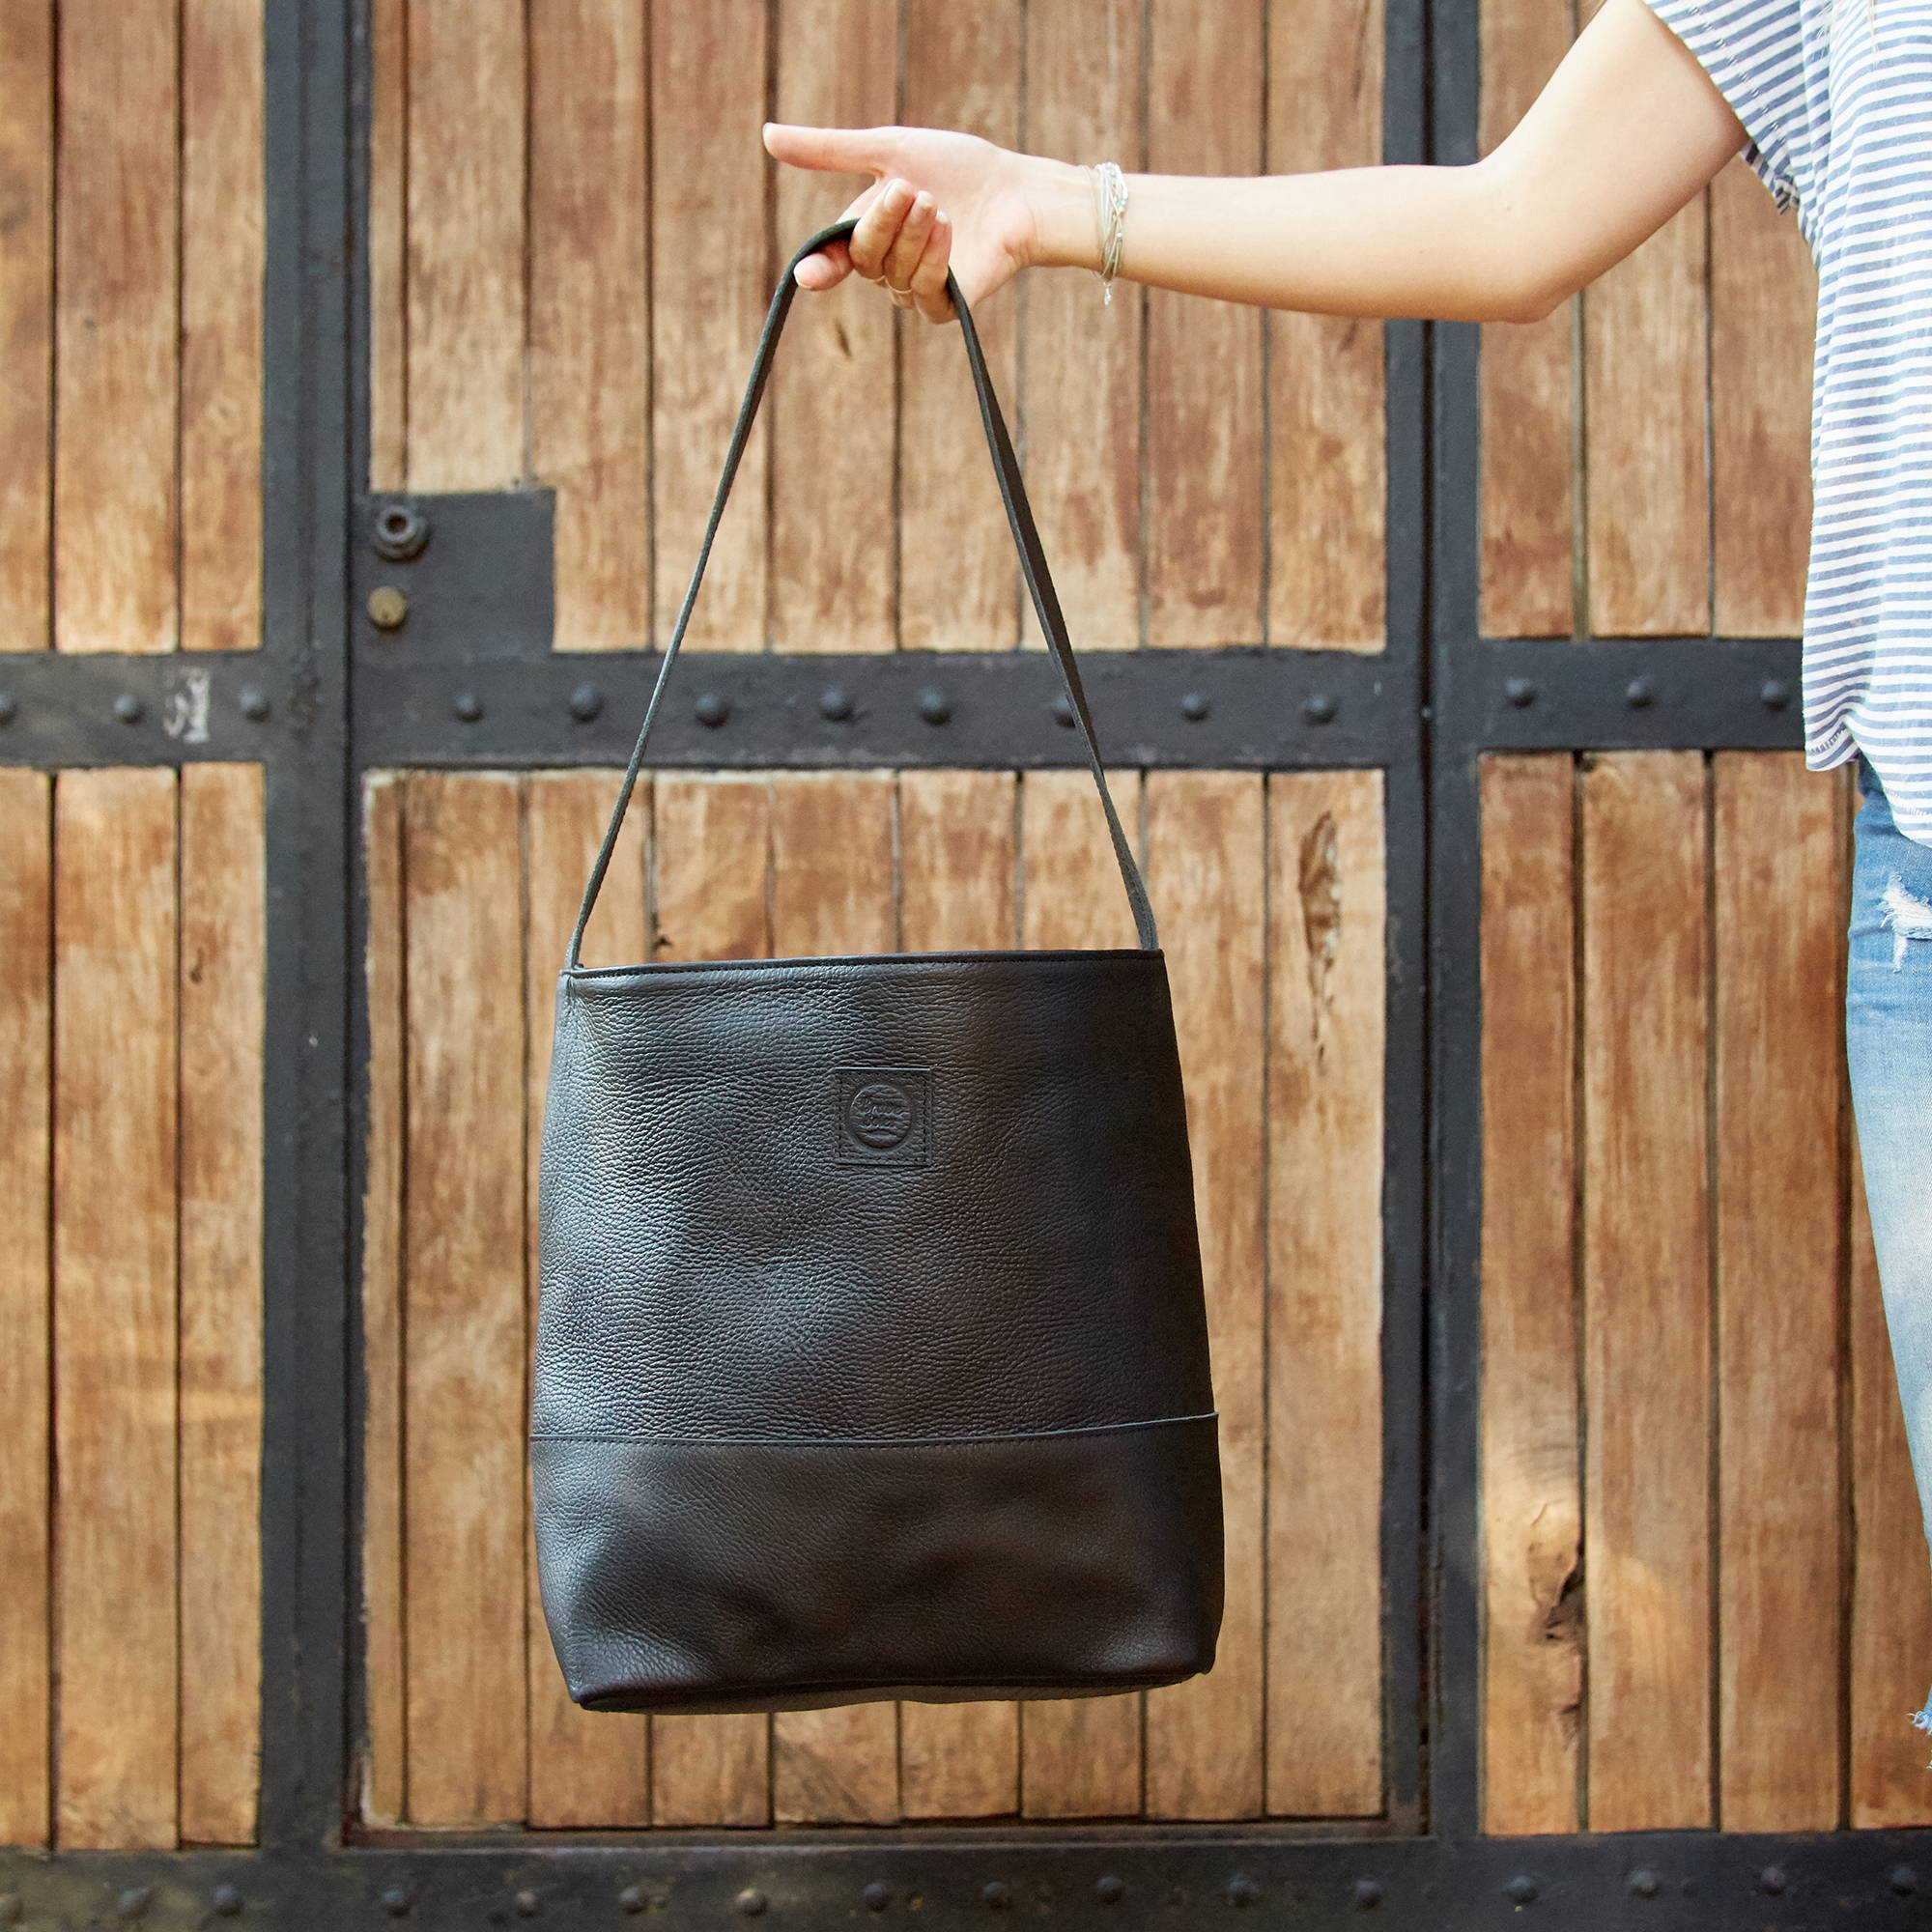 A hand holding an oversized black leather tote bag made of upcycled tires from the Dominican Republic.